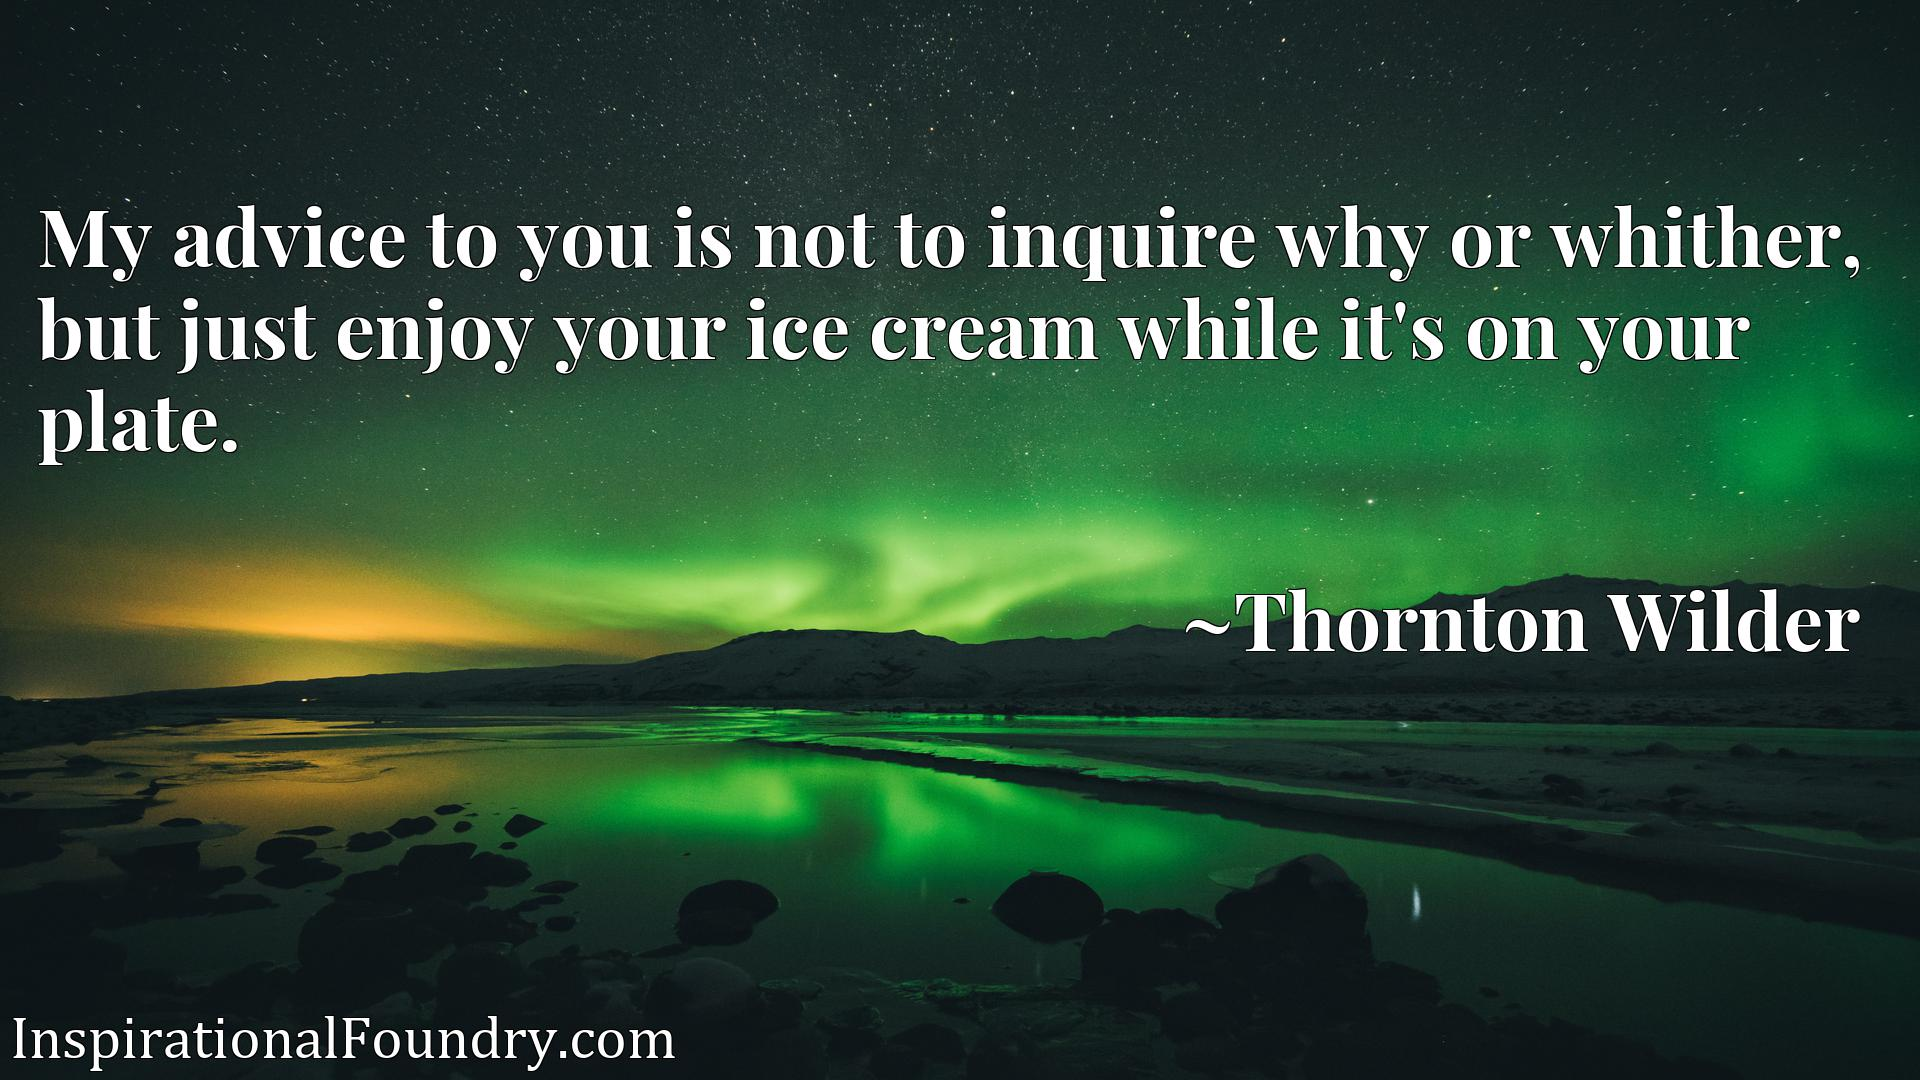 Quote Picture :My advice to you is not to inquire why or whither, but just enjoy your ice cream while it's on your plate.